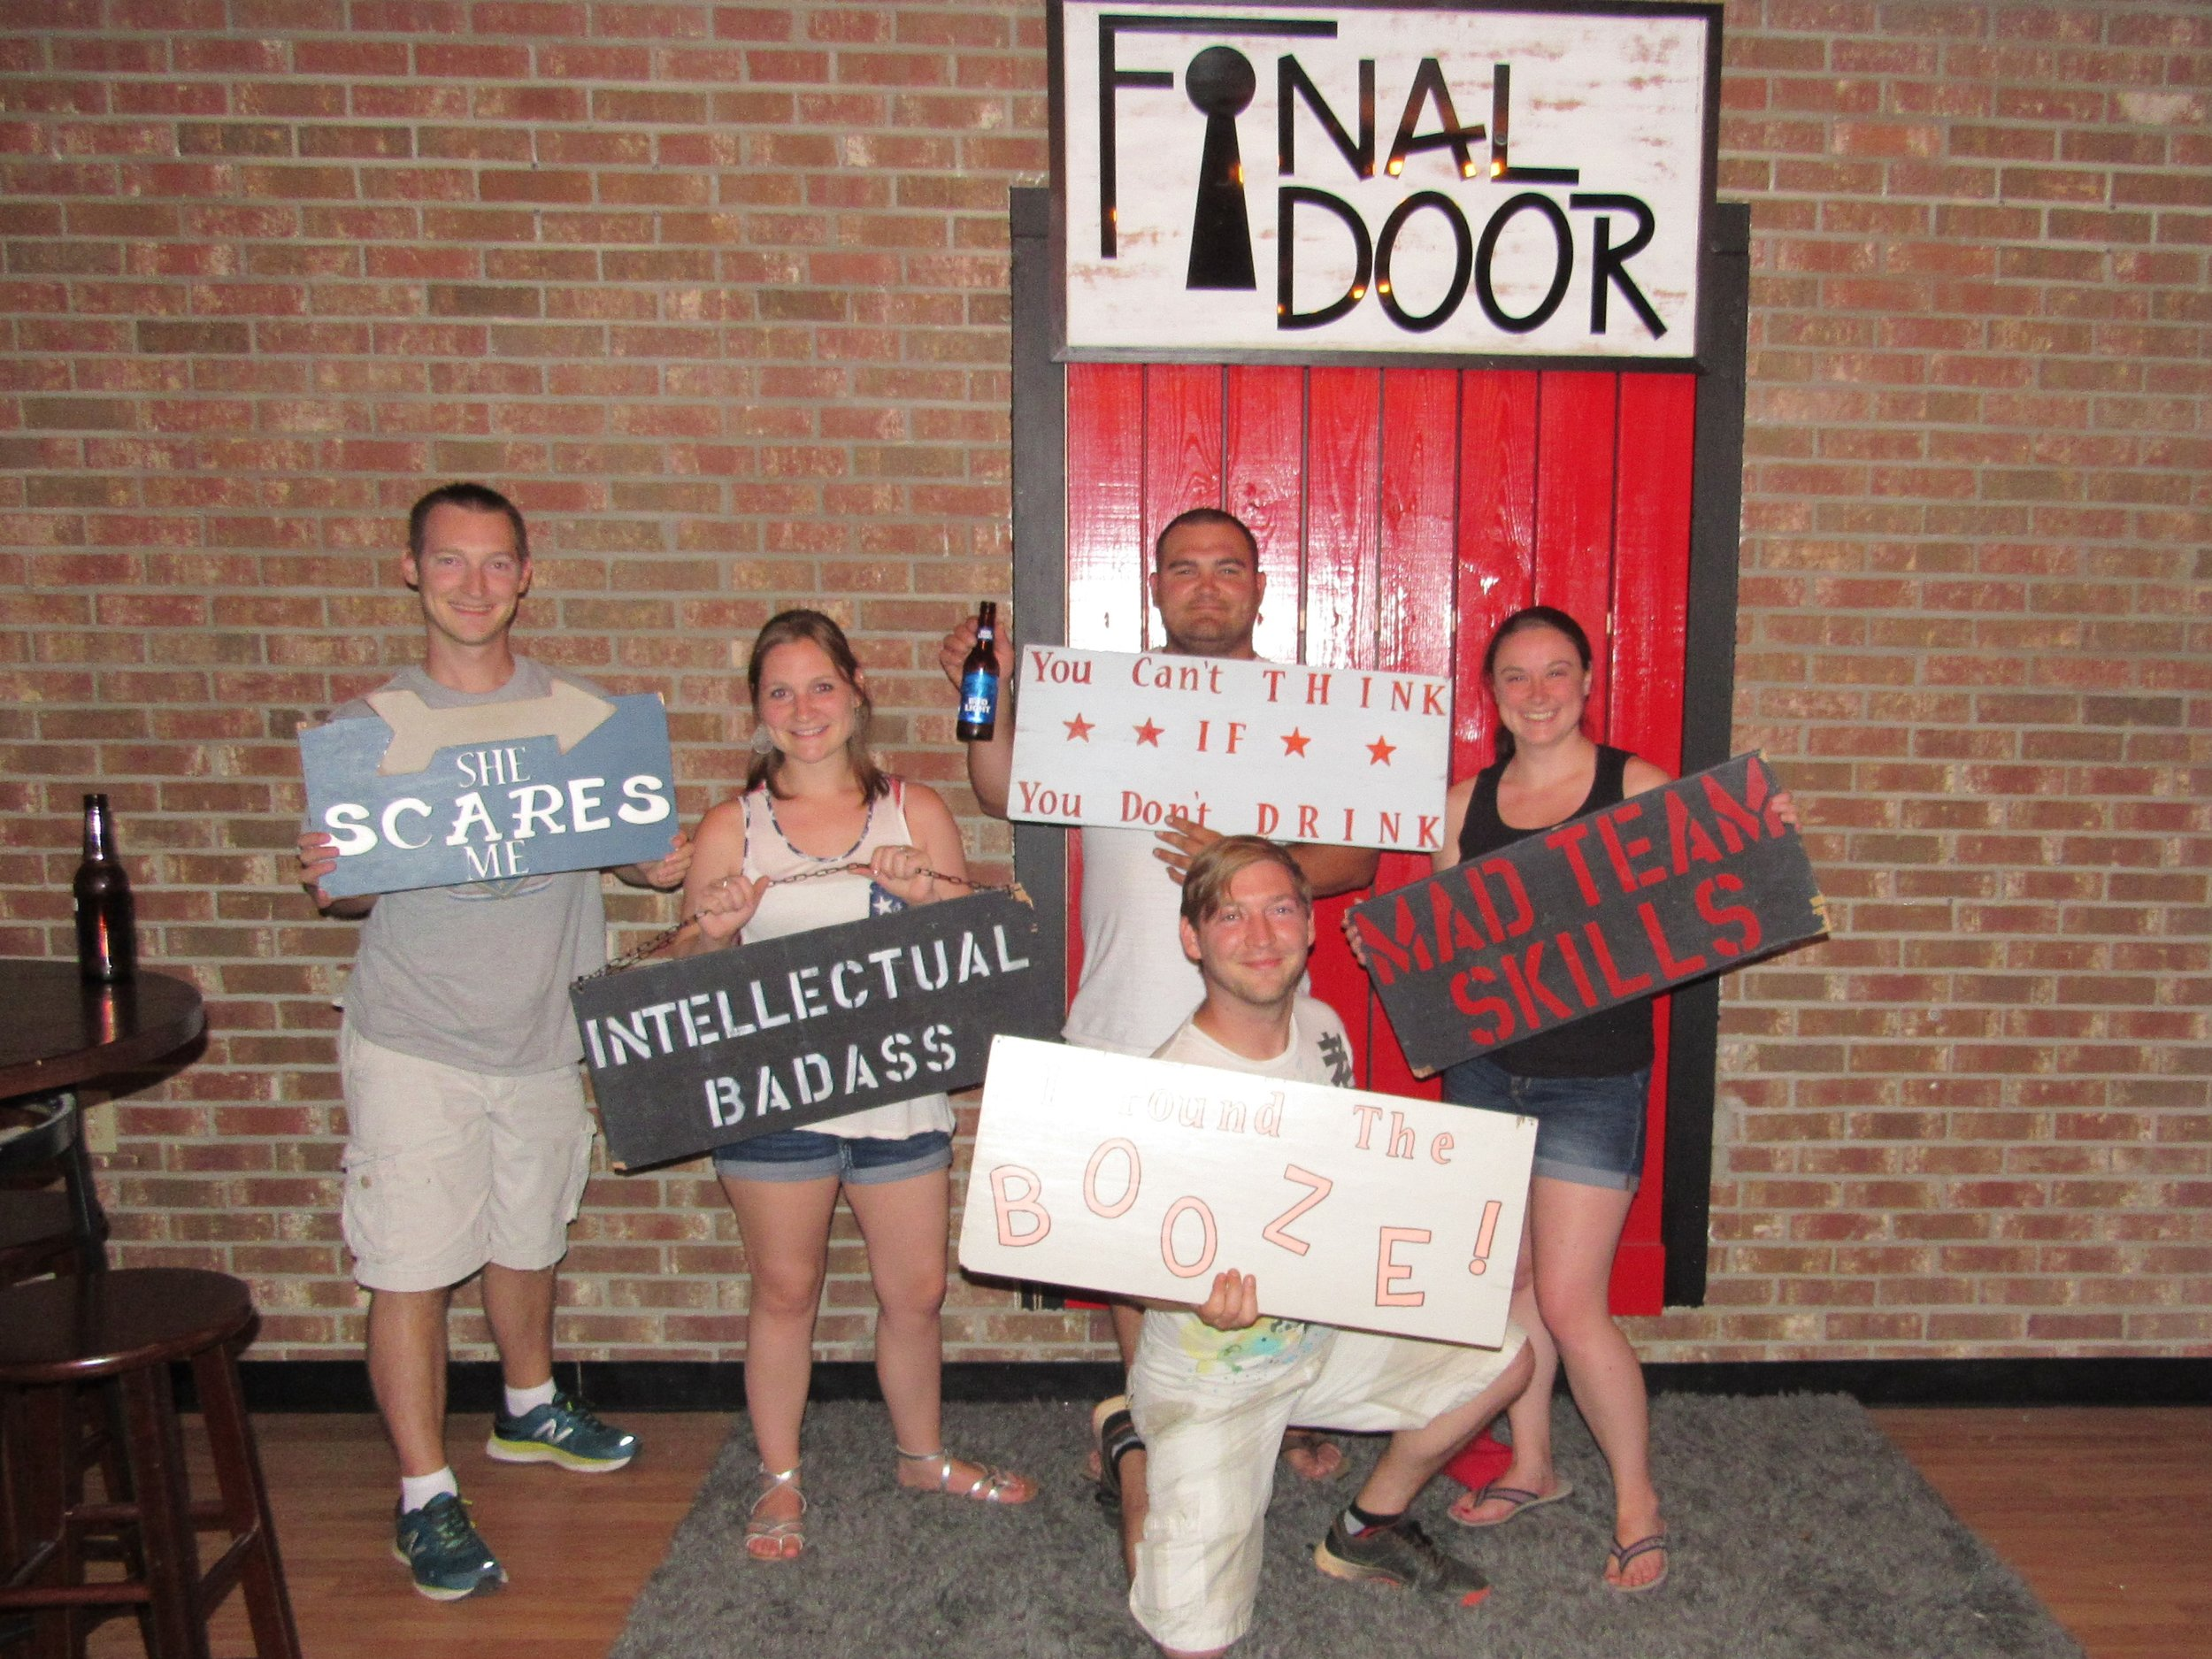 the-final-door-escape-room-columbia-sc-team-photo-7-4-18-07.JPG